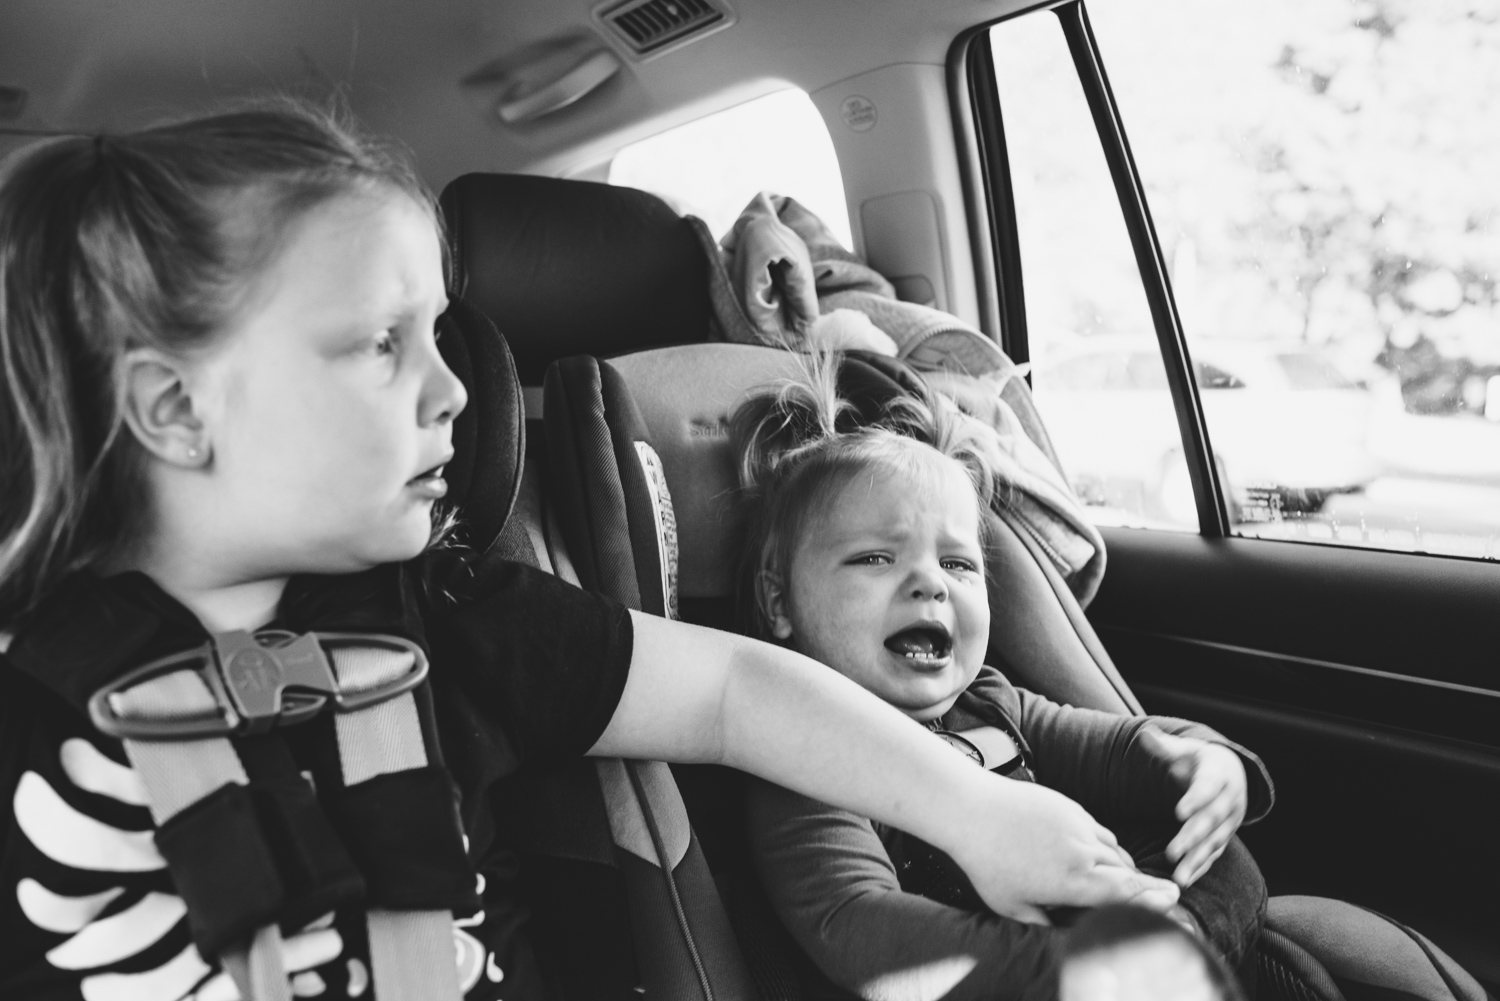 Little girl comforting crying baby in car.